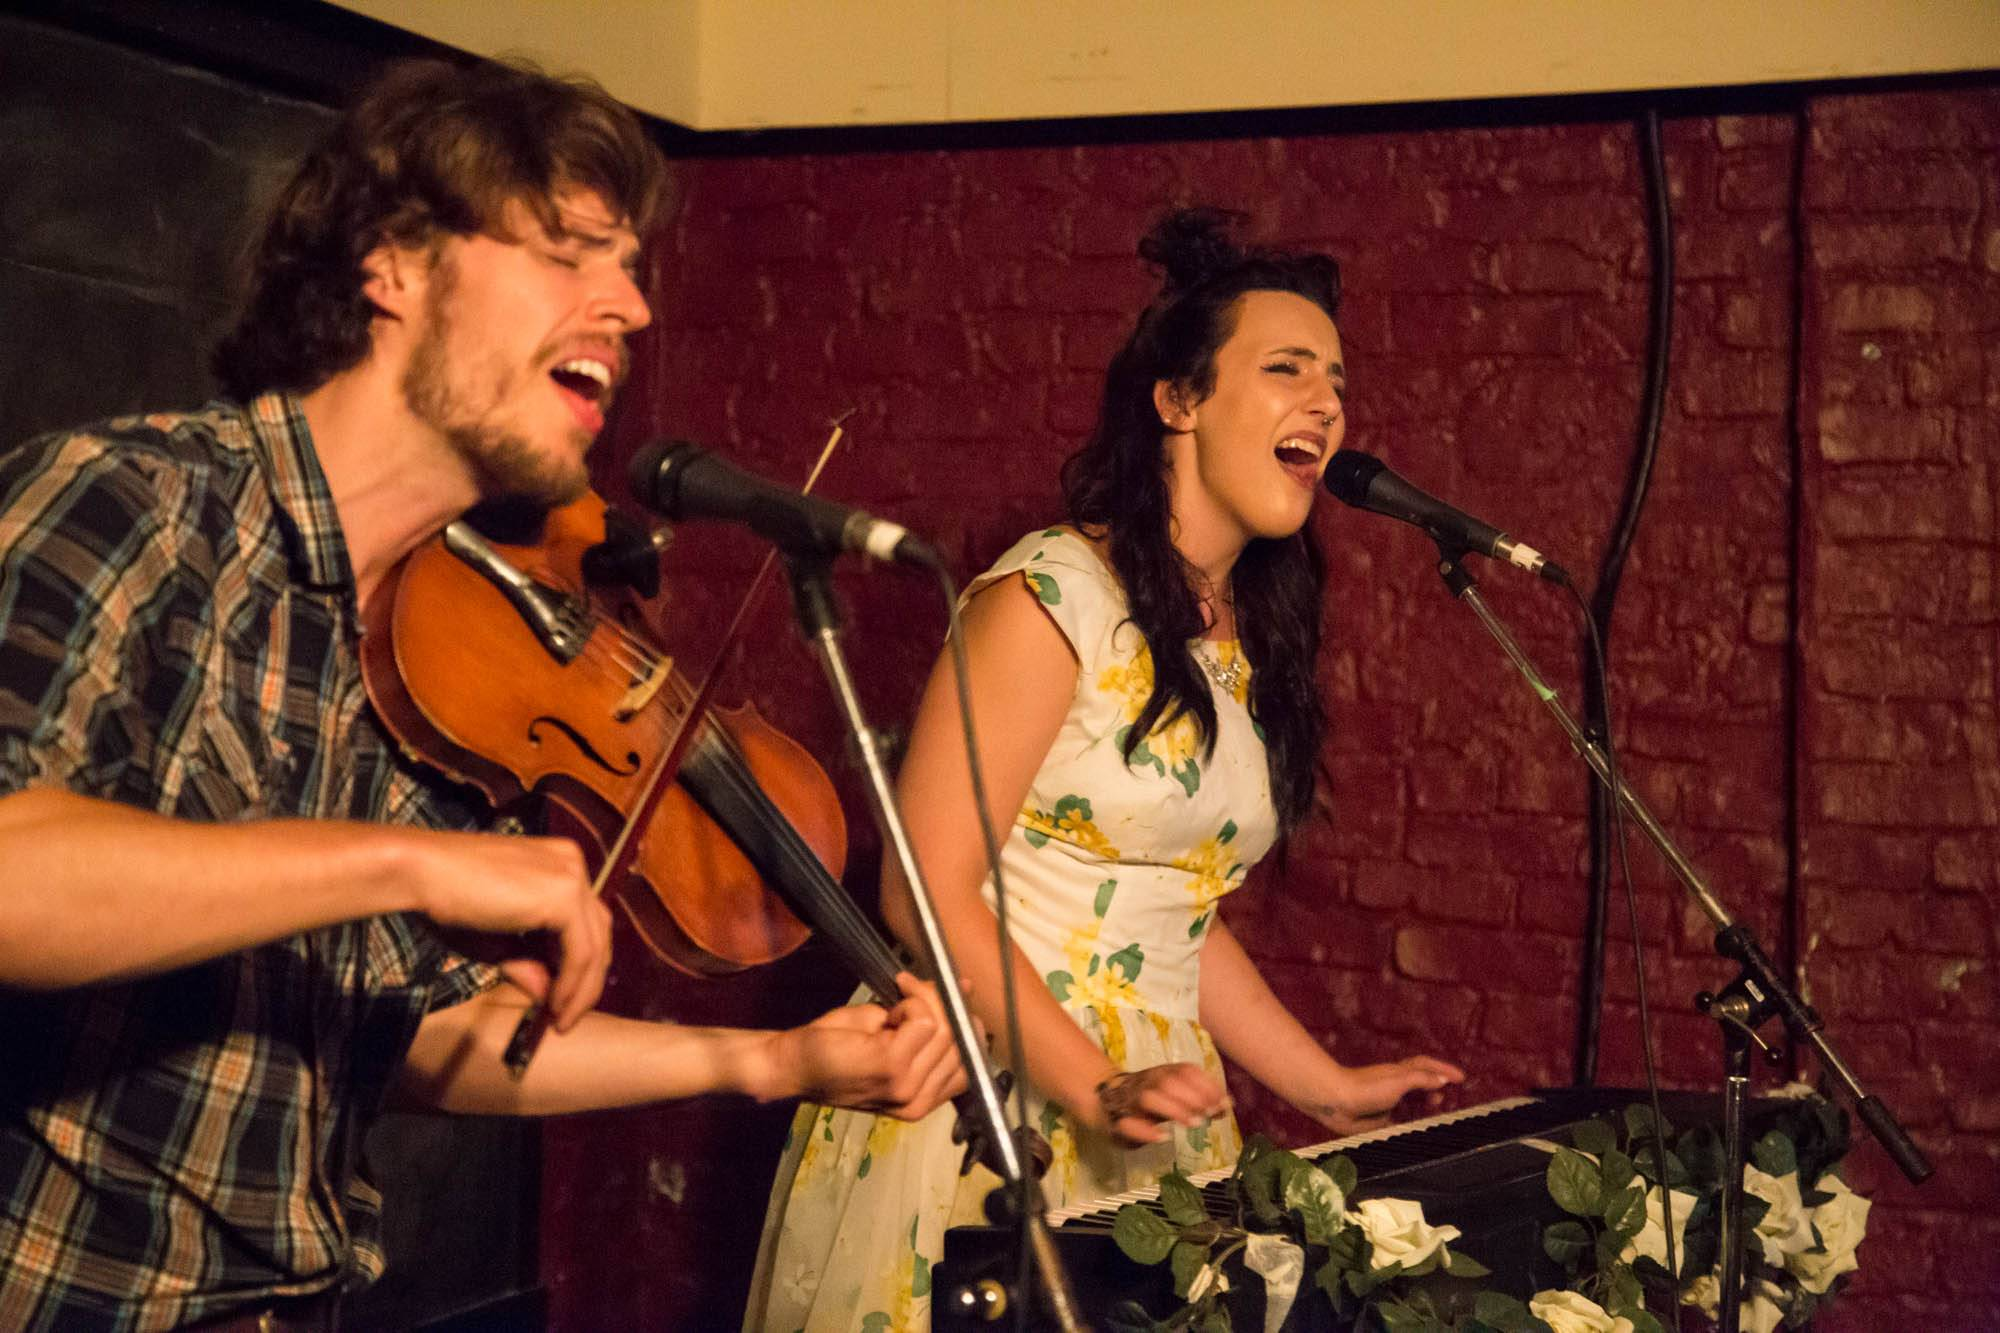 Sarah Jickling and her Good Bad Luck at the Emerald Supper Club, Vancouver, July 13 2017. Kirk Chantraine photo.